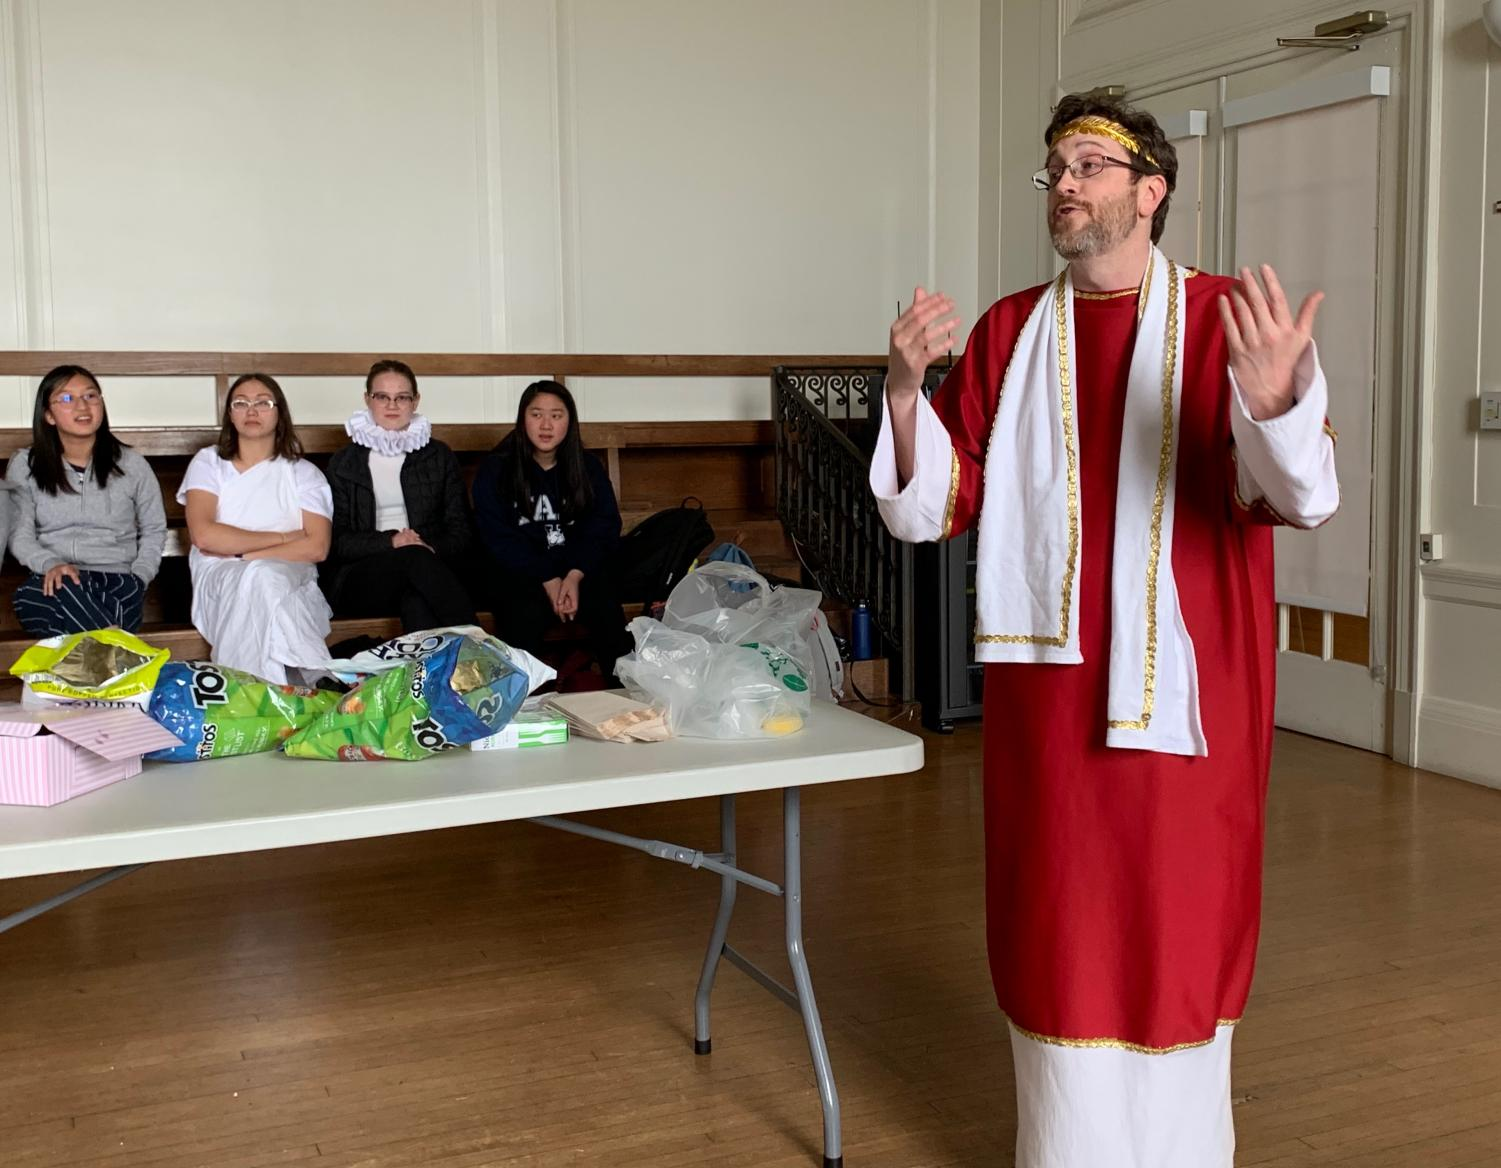 English teacher Mark Botti congratulates the winners of the Shakespearian references contest competition. Botti dressed up as a Roman Senator from the play Julius Caesar.